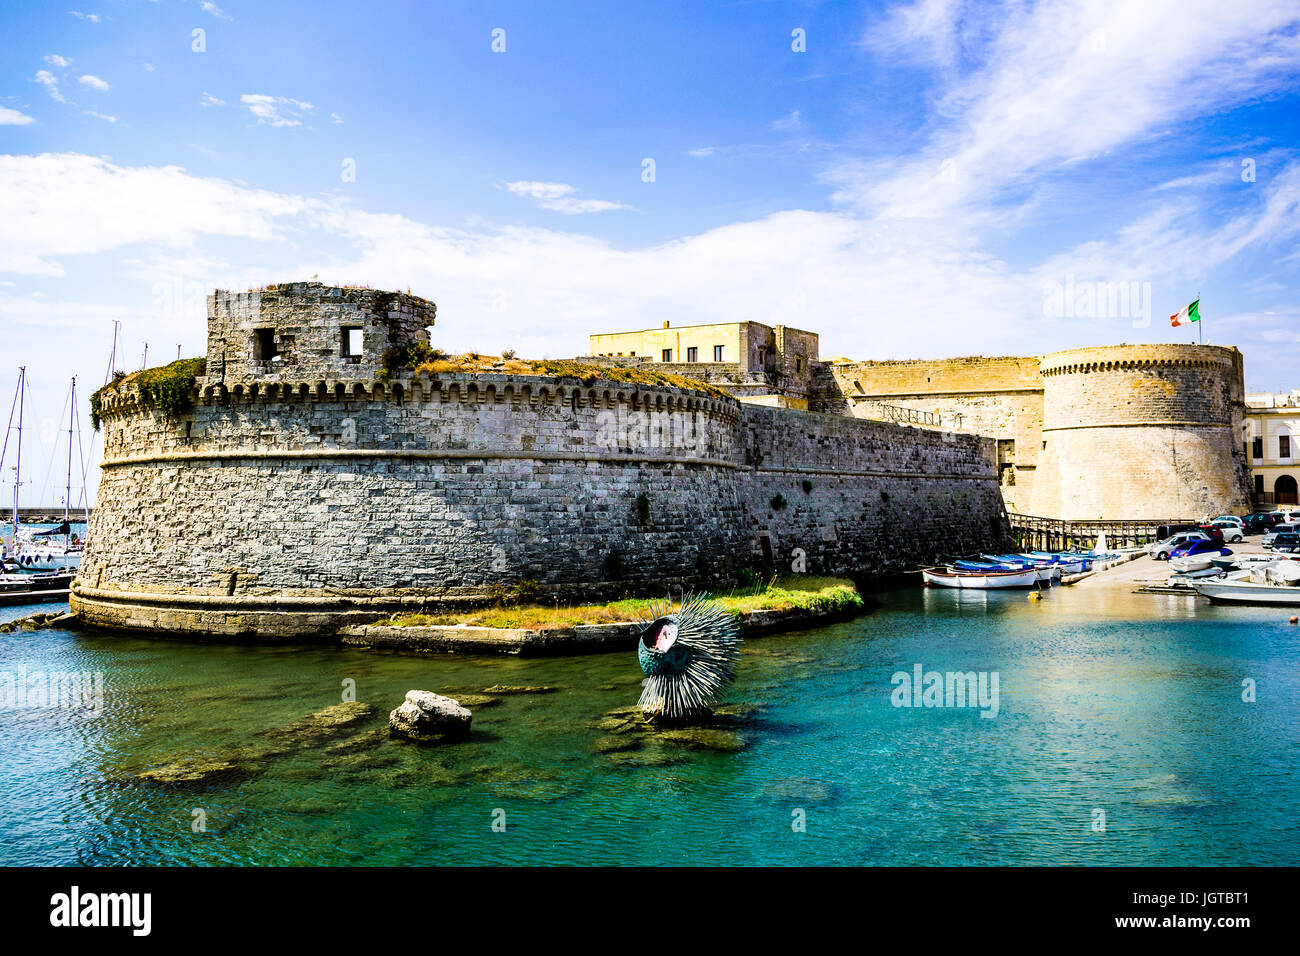 Gallipoli Castle (XI century) as seen on a beautiful summer day, view from the sidewalk. - Stock Image